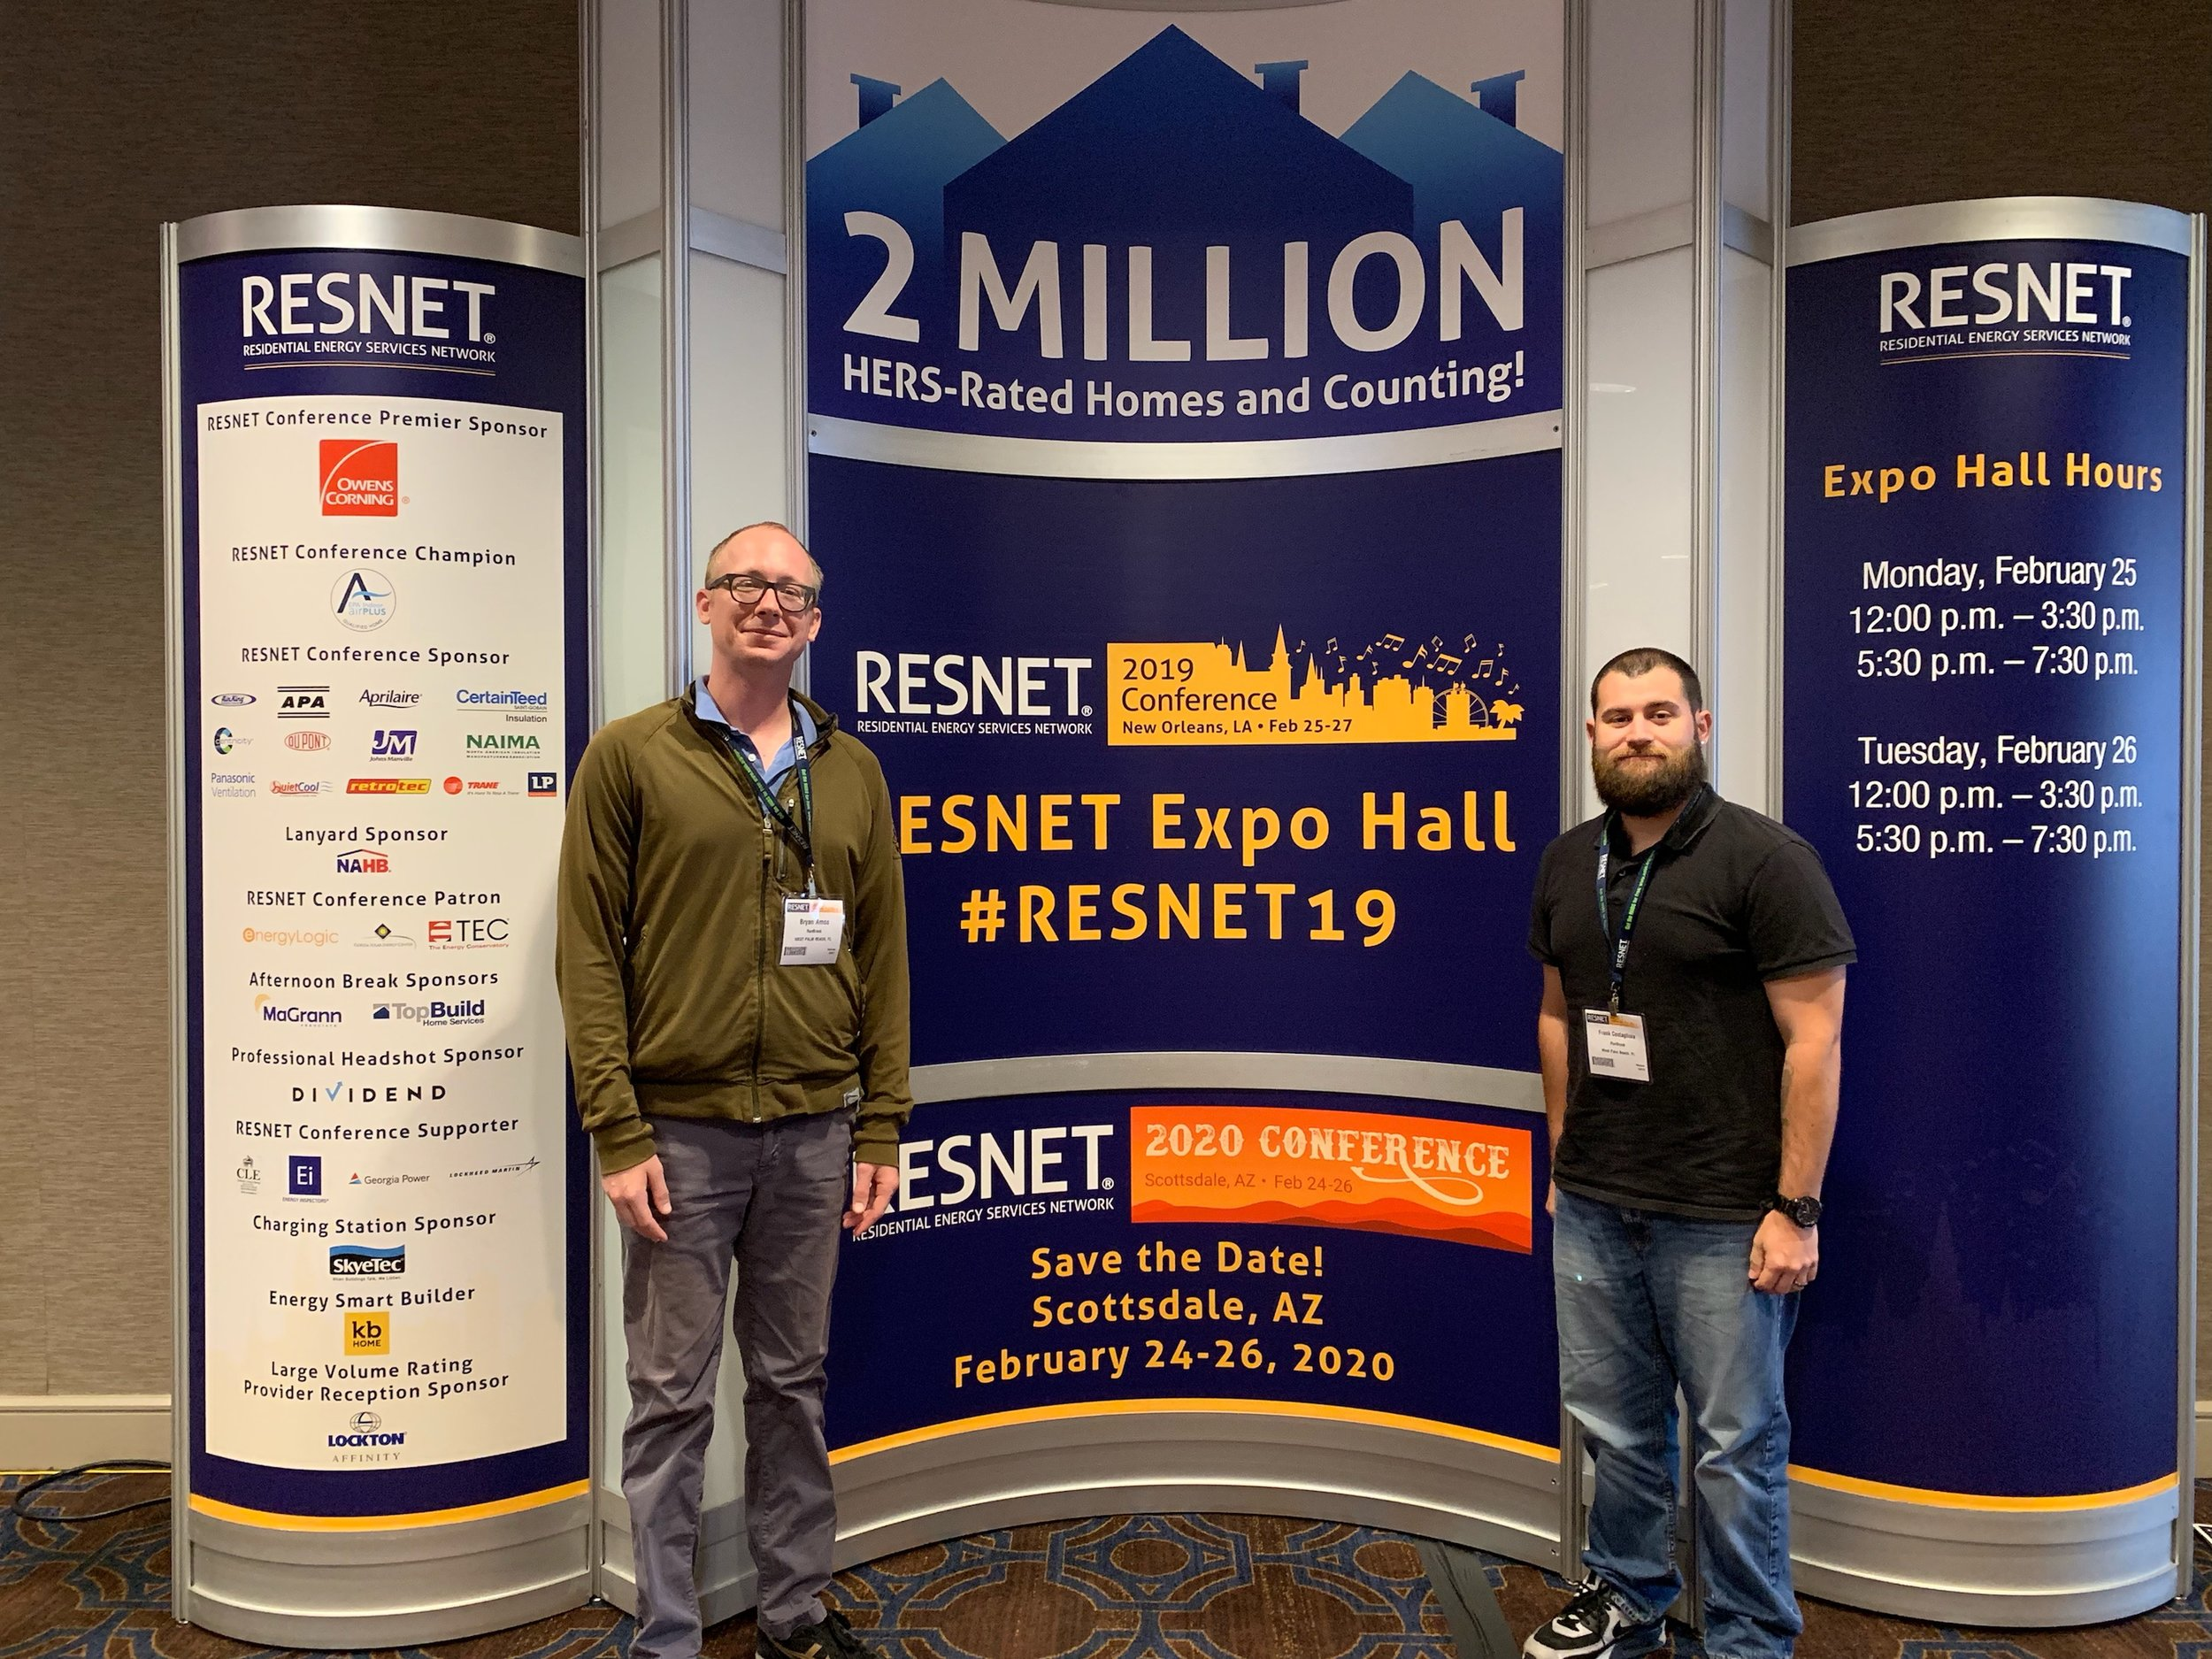 RunBrook at RESNET 2019 Conference New Orleans